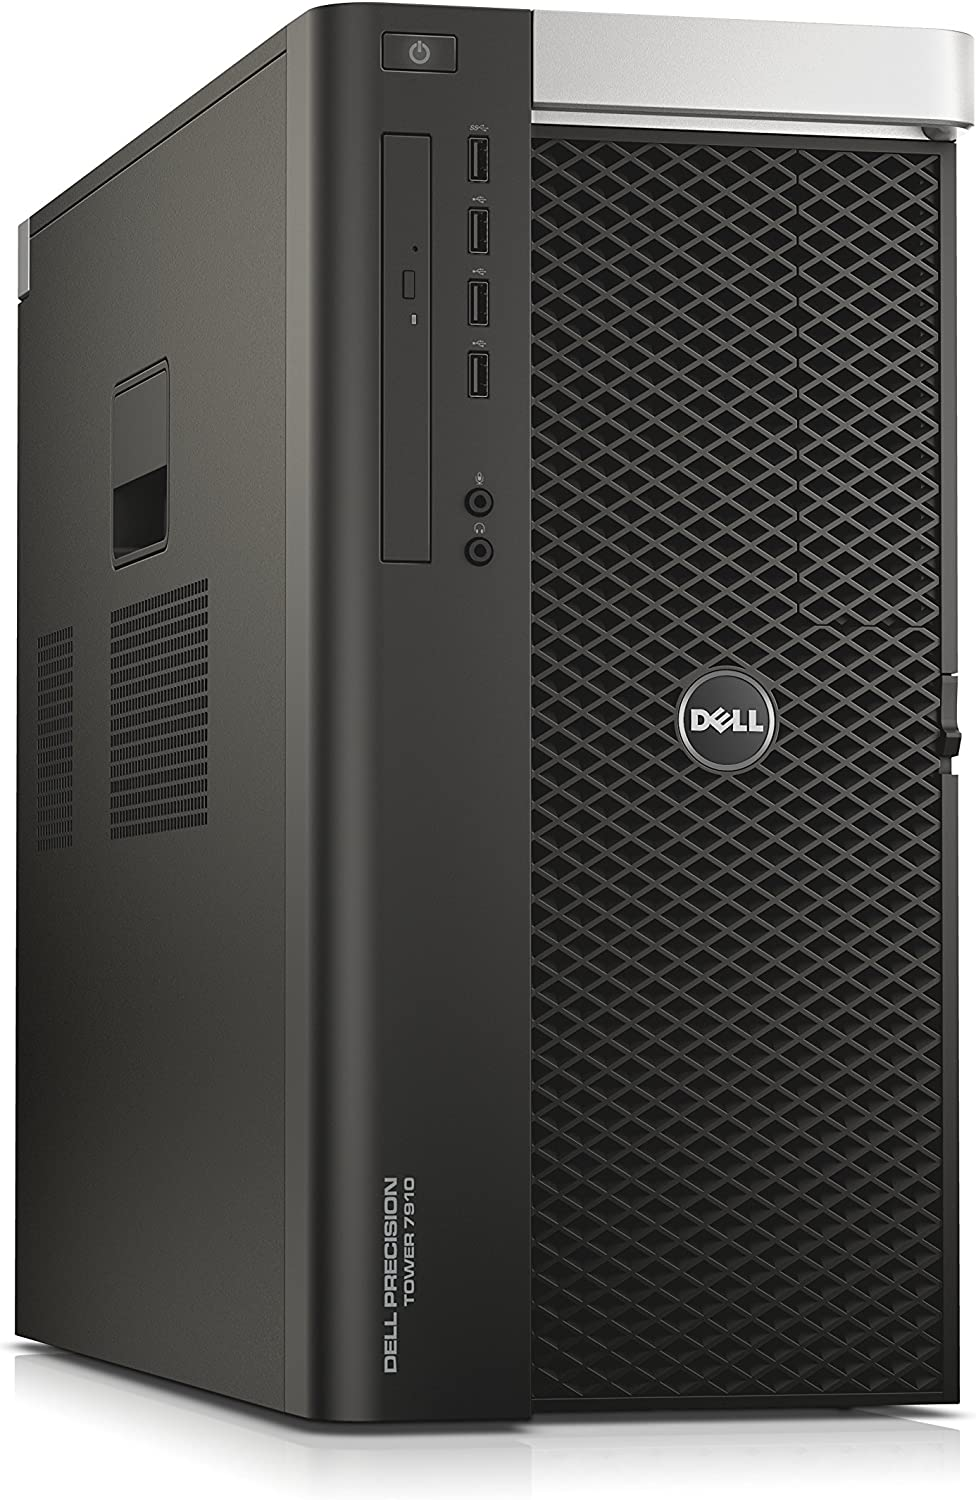 Dell Precision T7910 Tower Workstation - Intel Xeon E5-2630 v3 2.40 GHz 462-9293